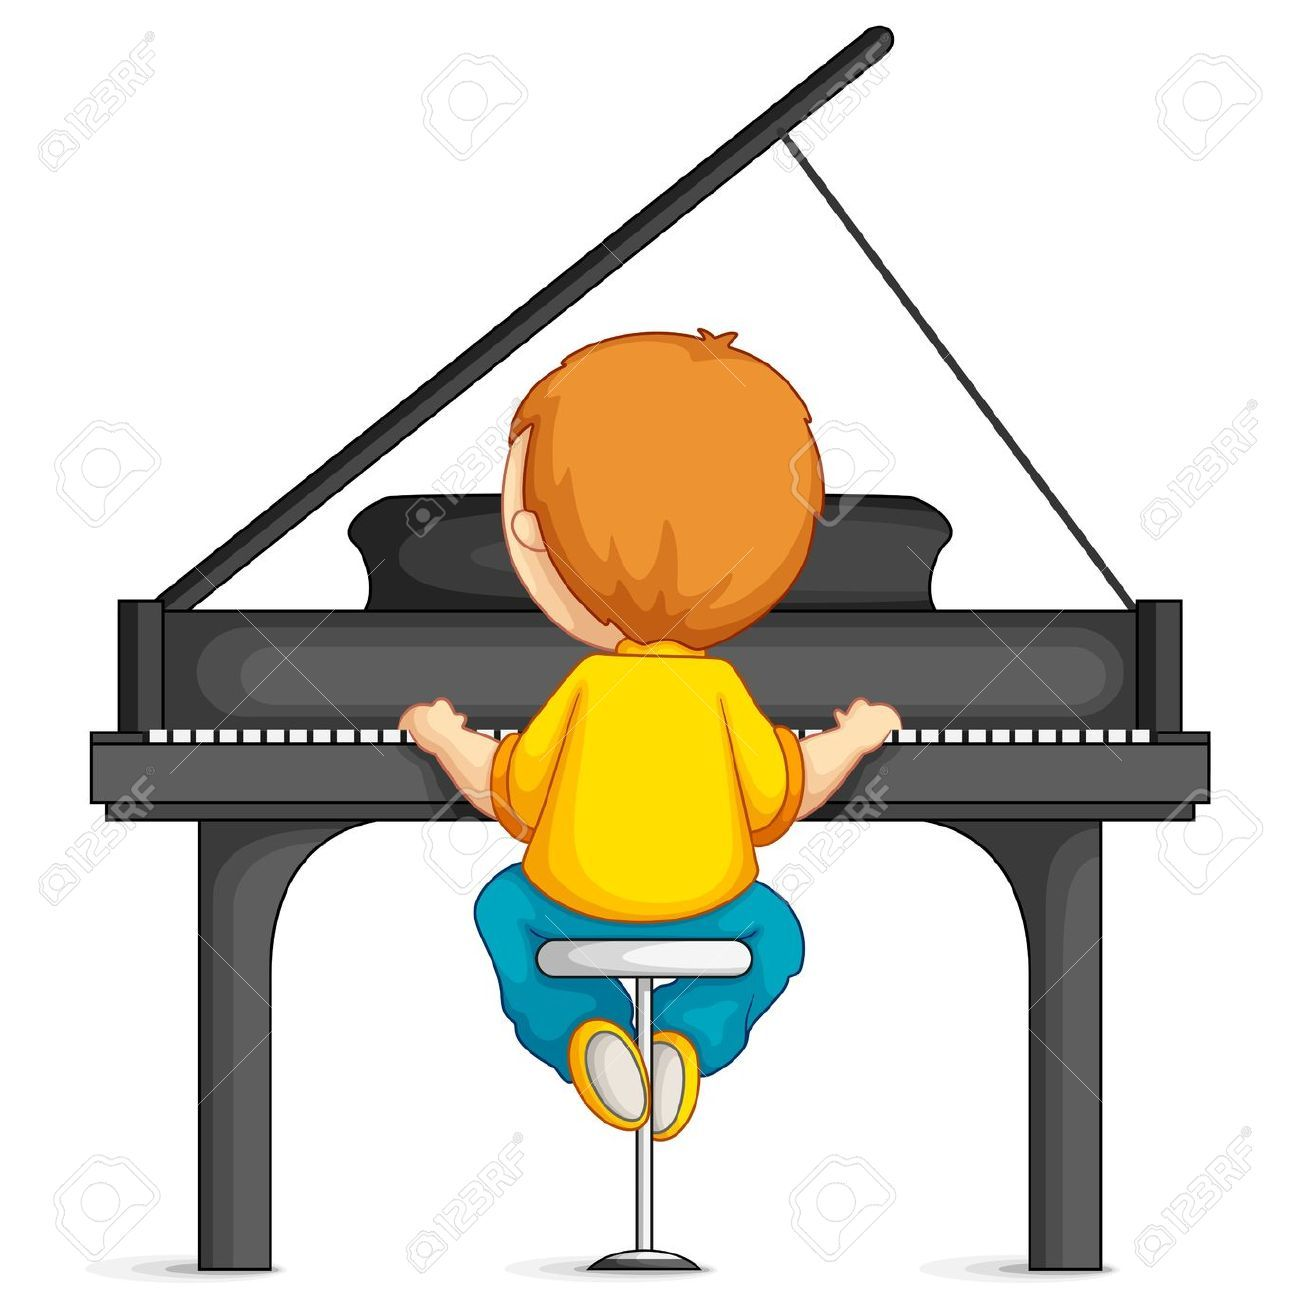 Play the piano clipart 3 » Clipart Portal.